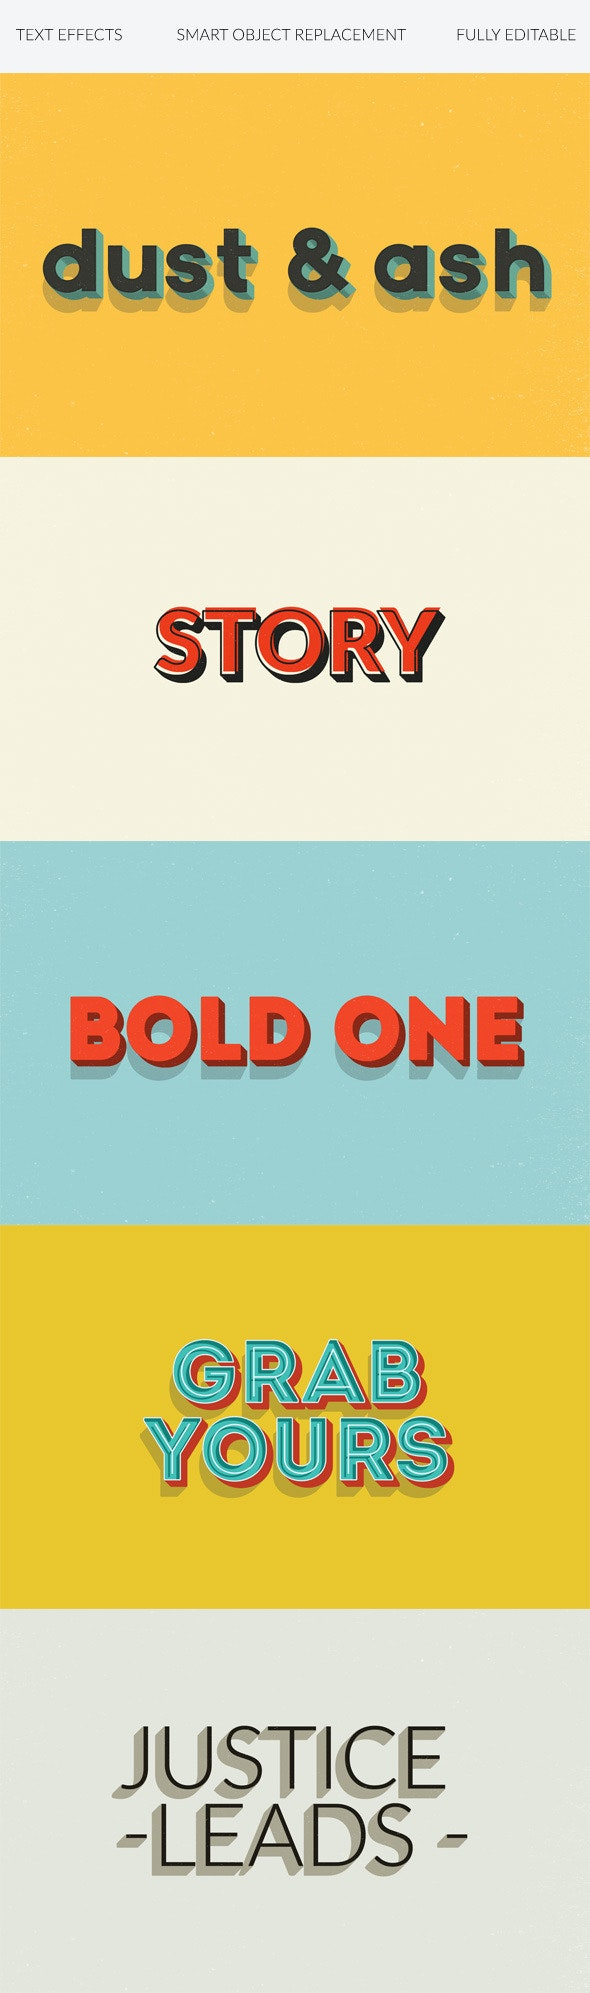 Text Effects | Vintage | 3D | Retro vol. 3 - Text Effects Actions